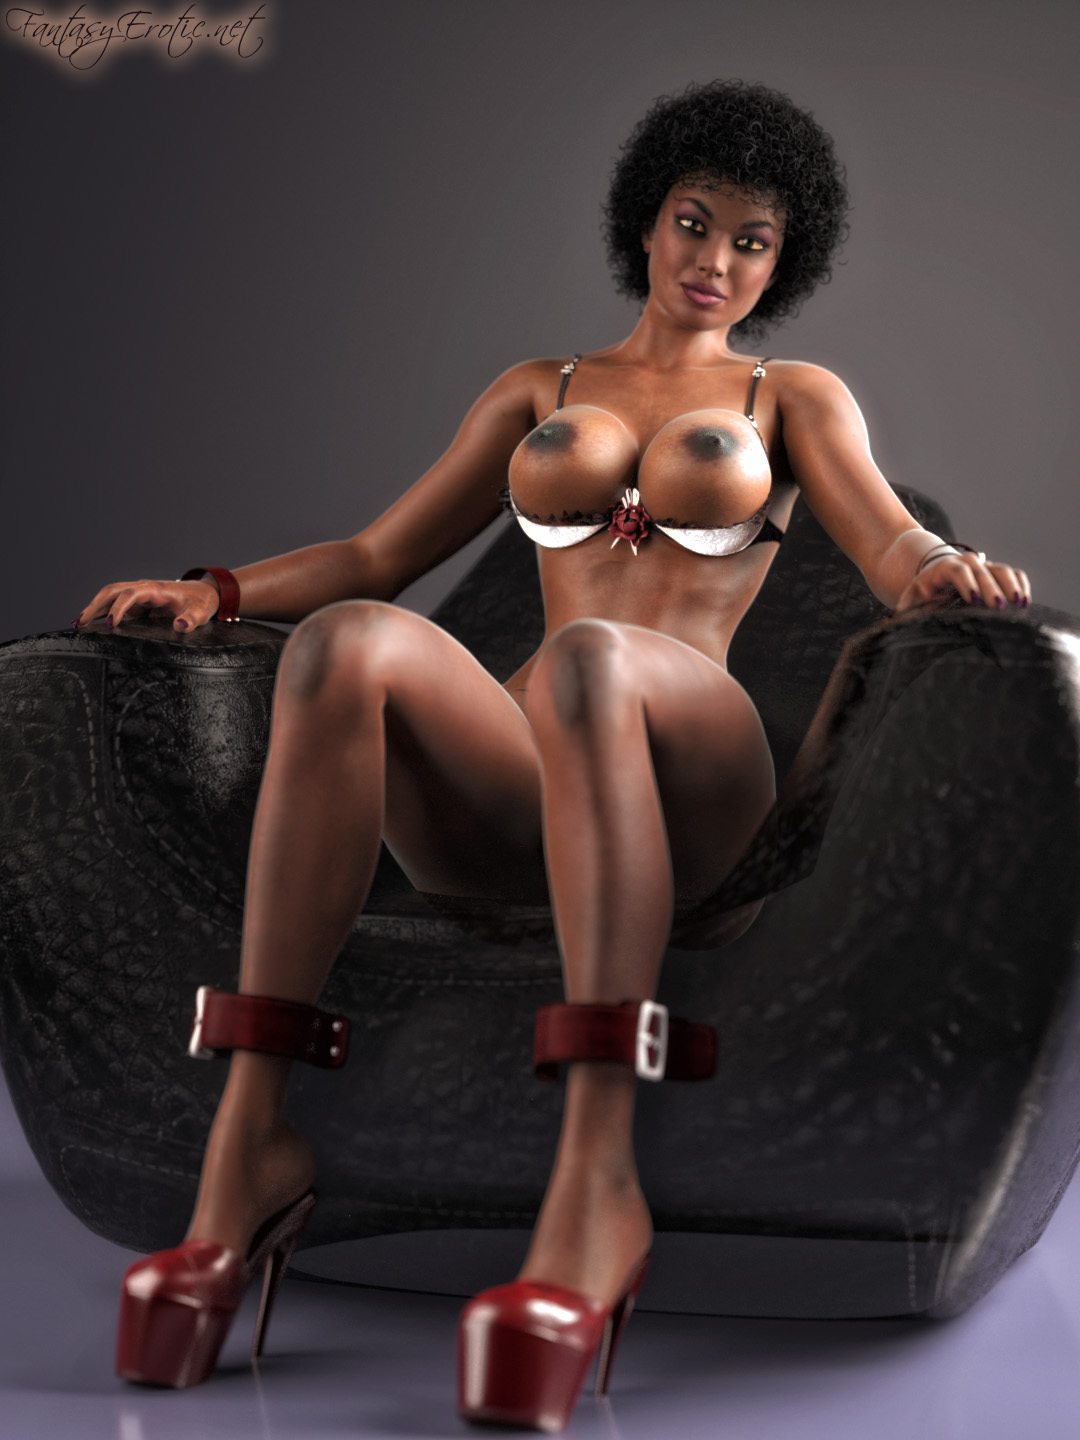 Ebony Woman on Bondage Sofa